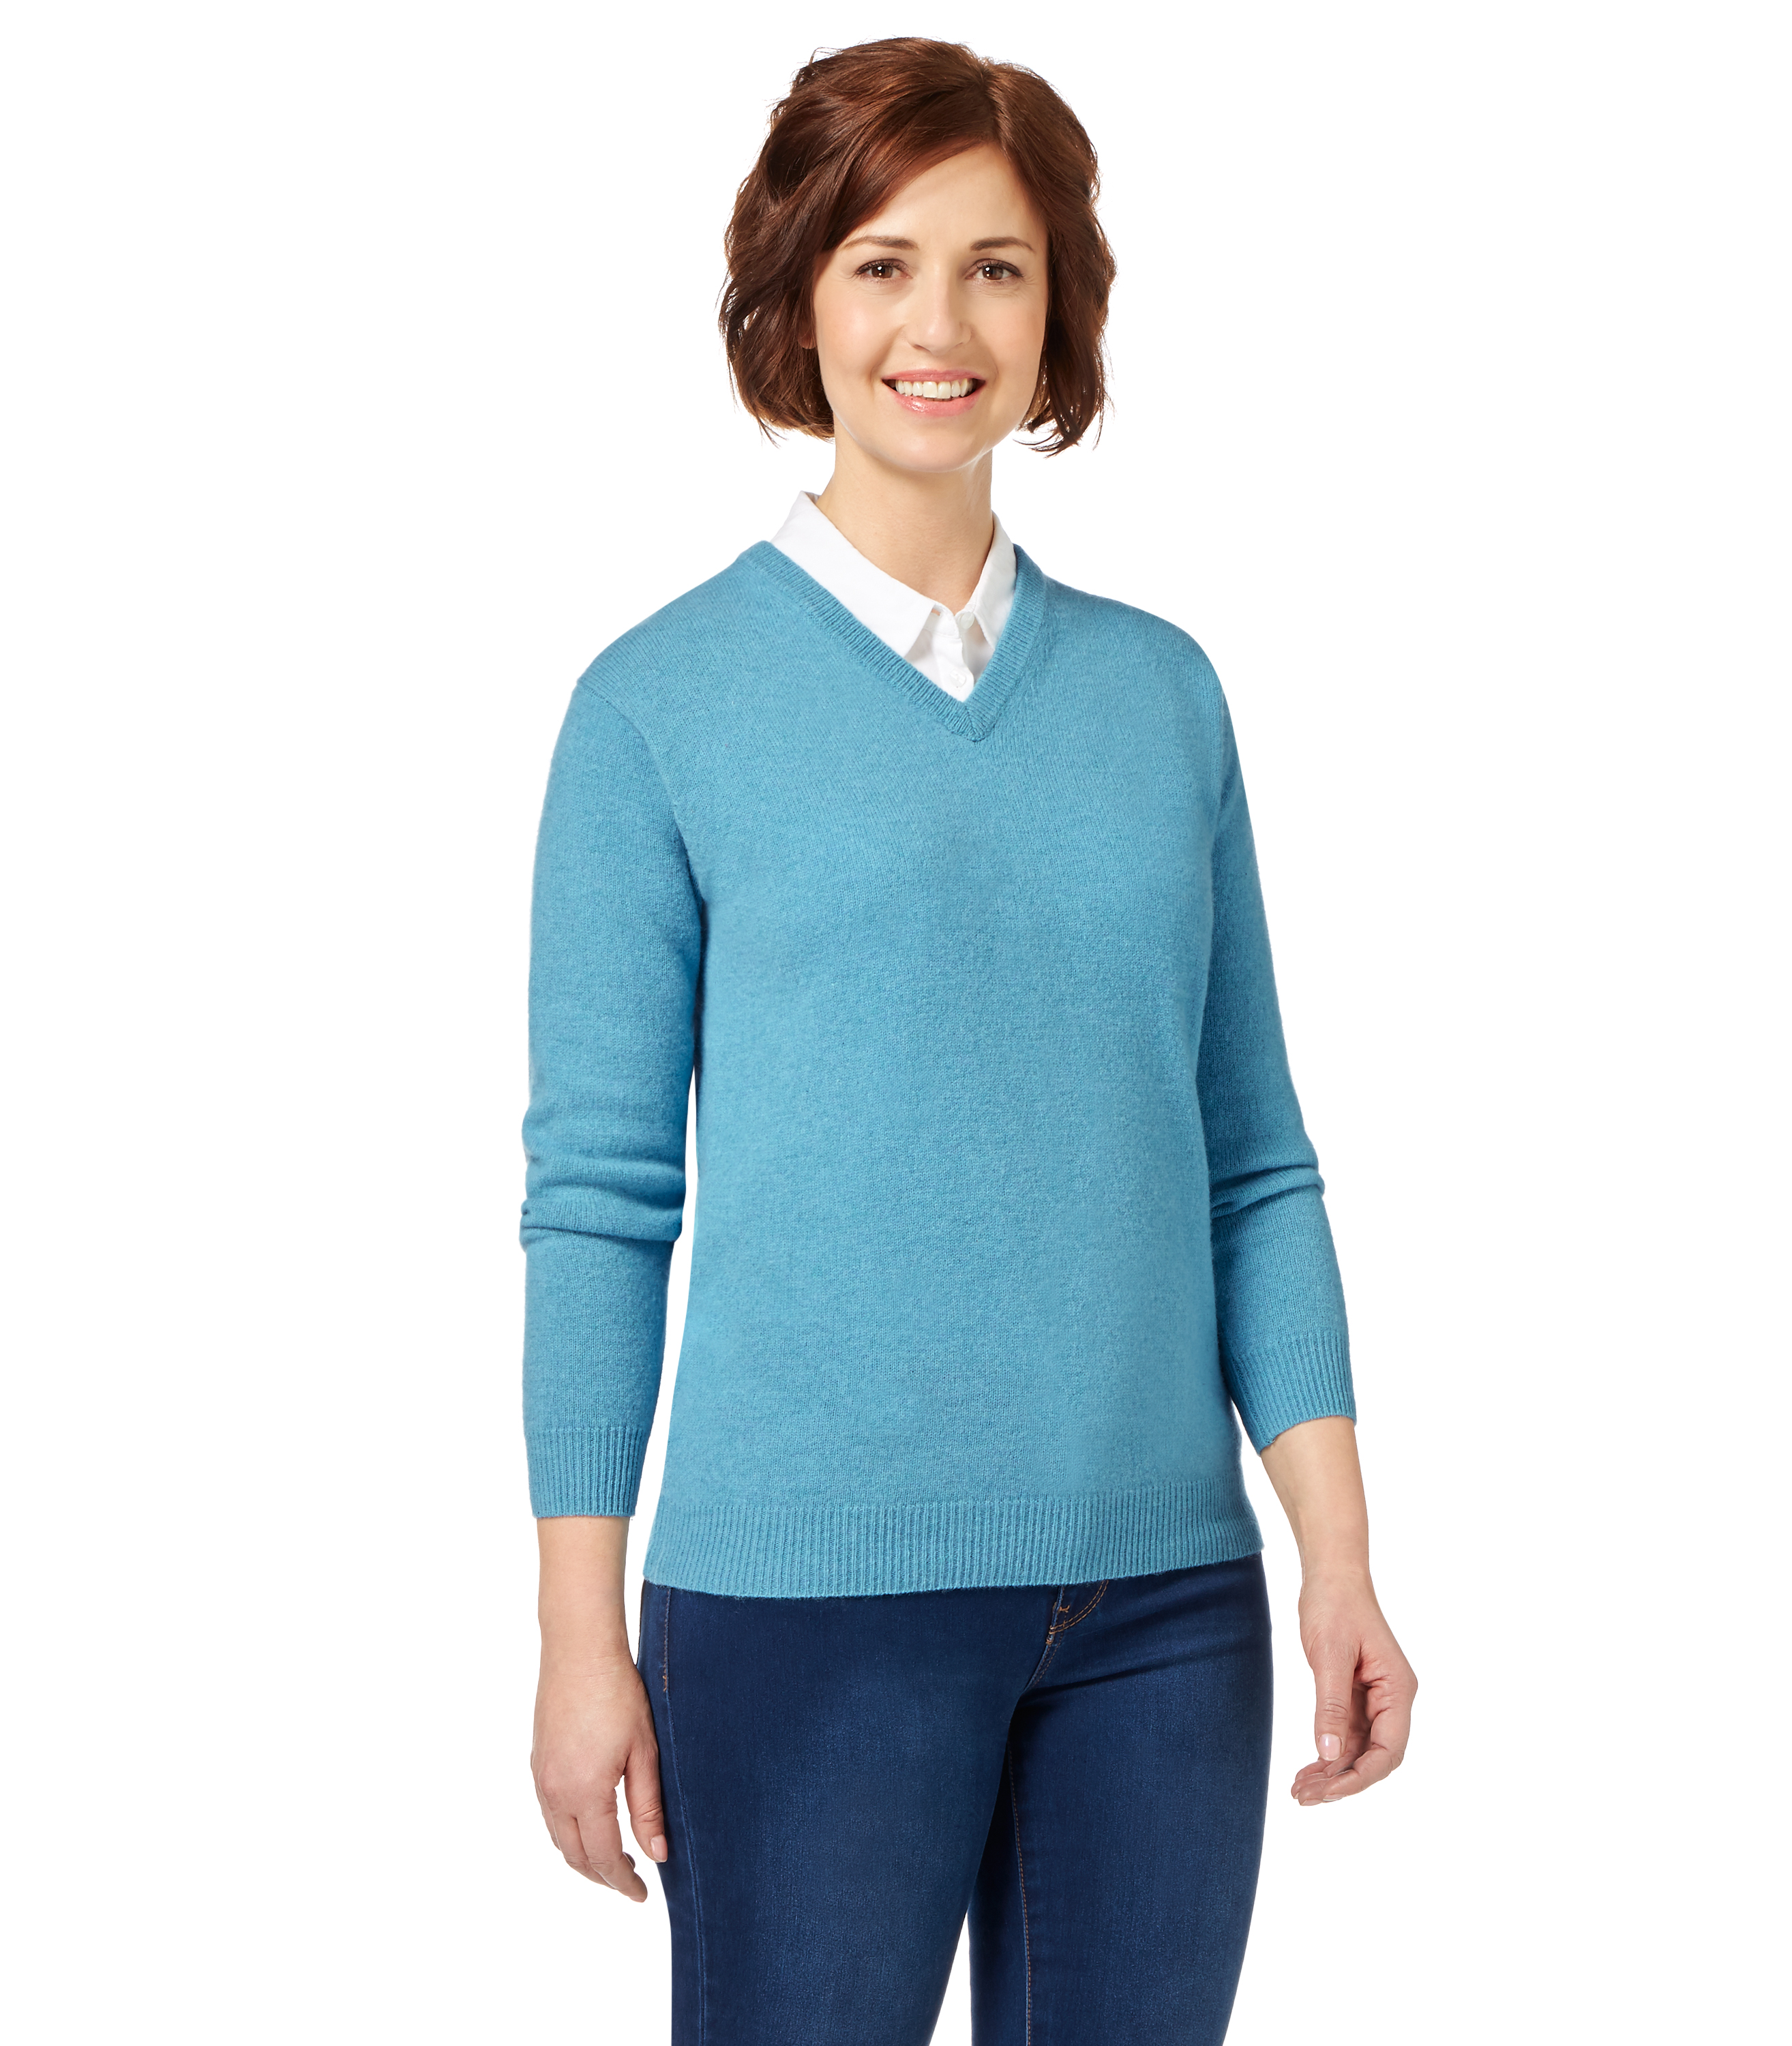 Find great deals on eBay for ladies v neck jumpers. Shop with confidence.